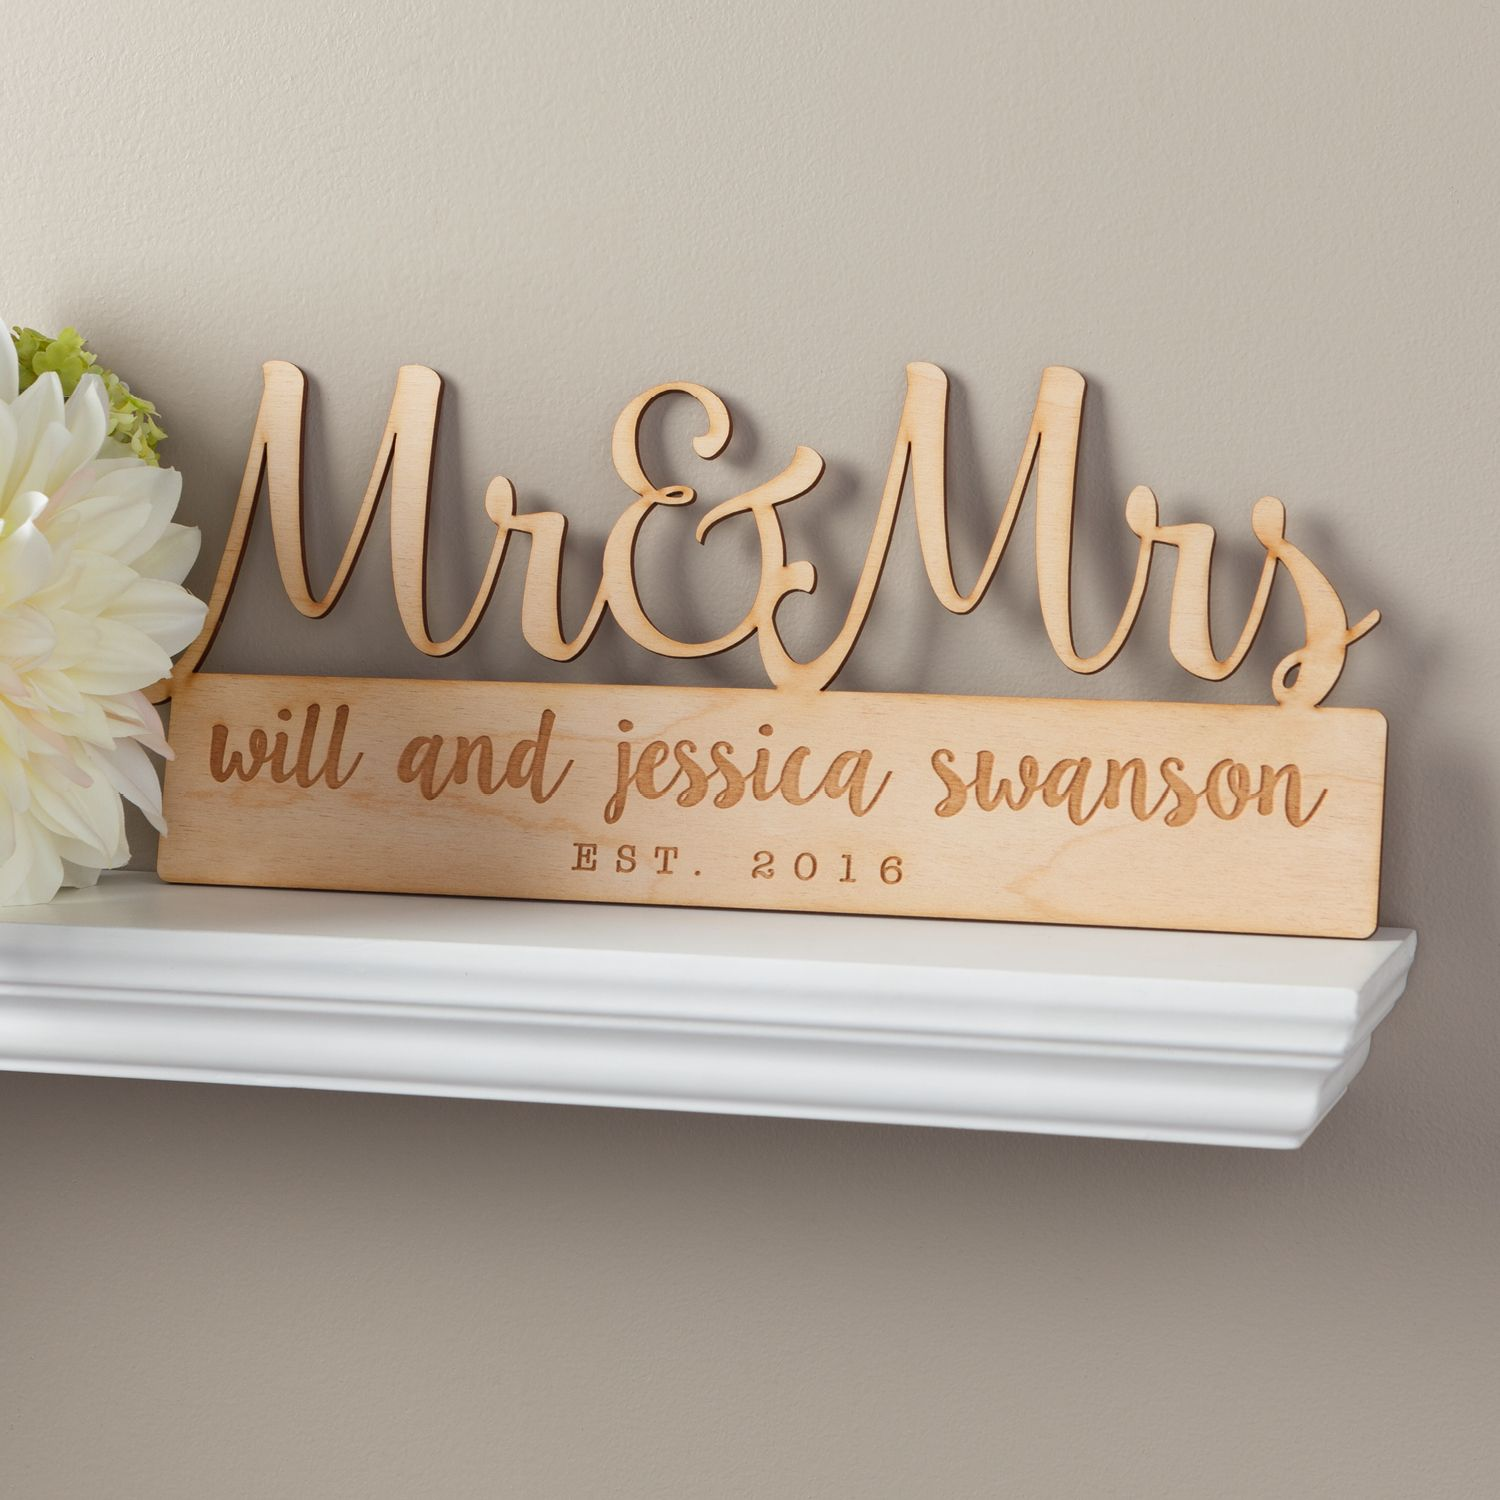 Wedding Gifts Mr And Mrs: Mr. & Mrs. Personalized Wood Plaque